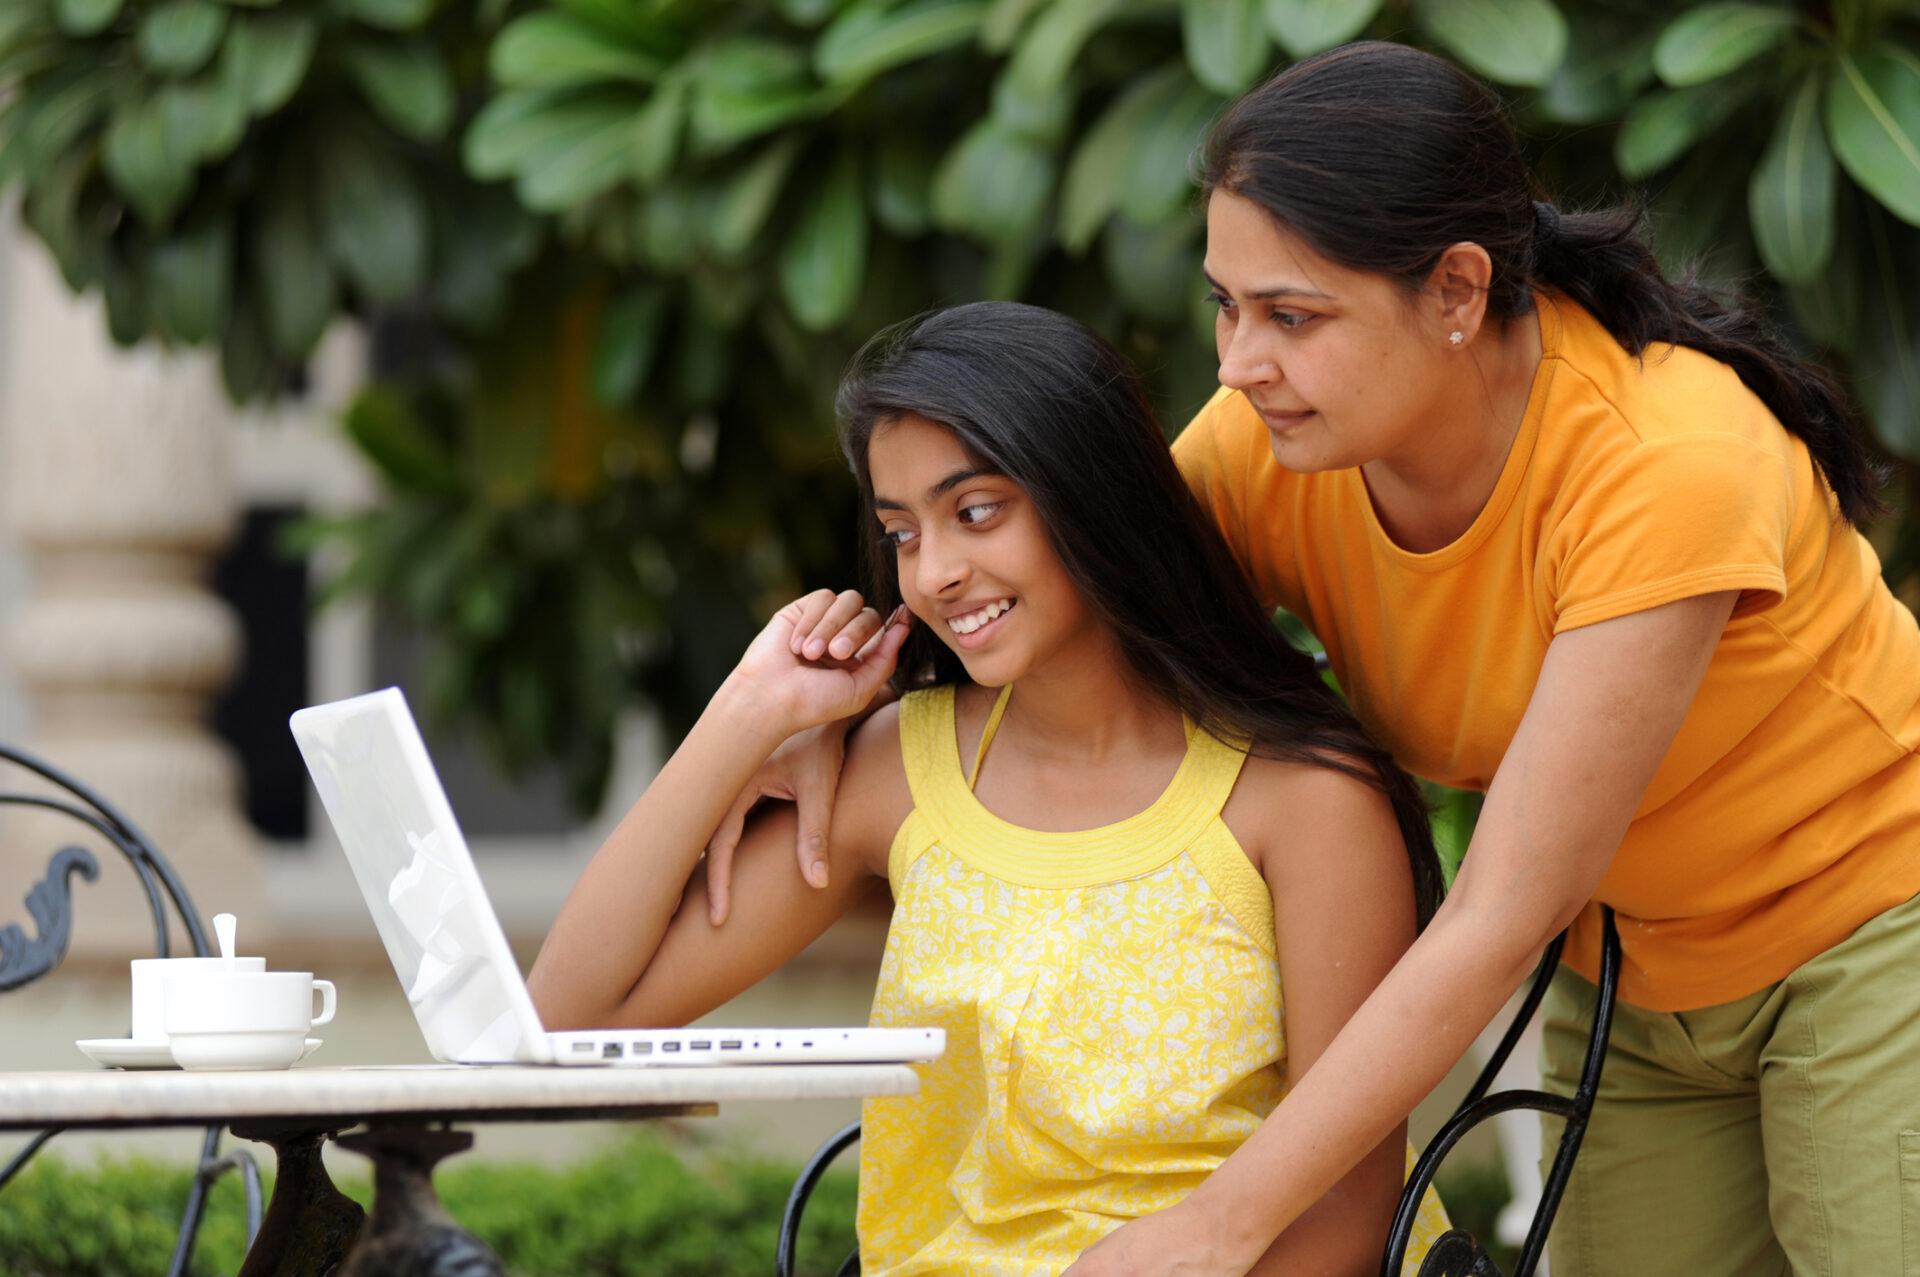 Loving mother and daughter using laptop together outdoors